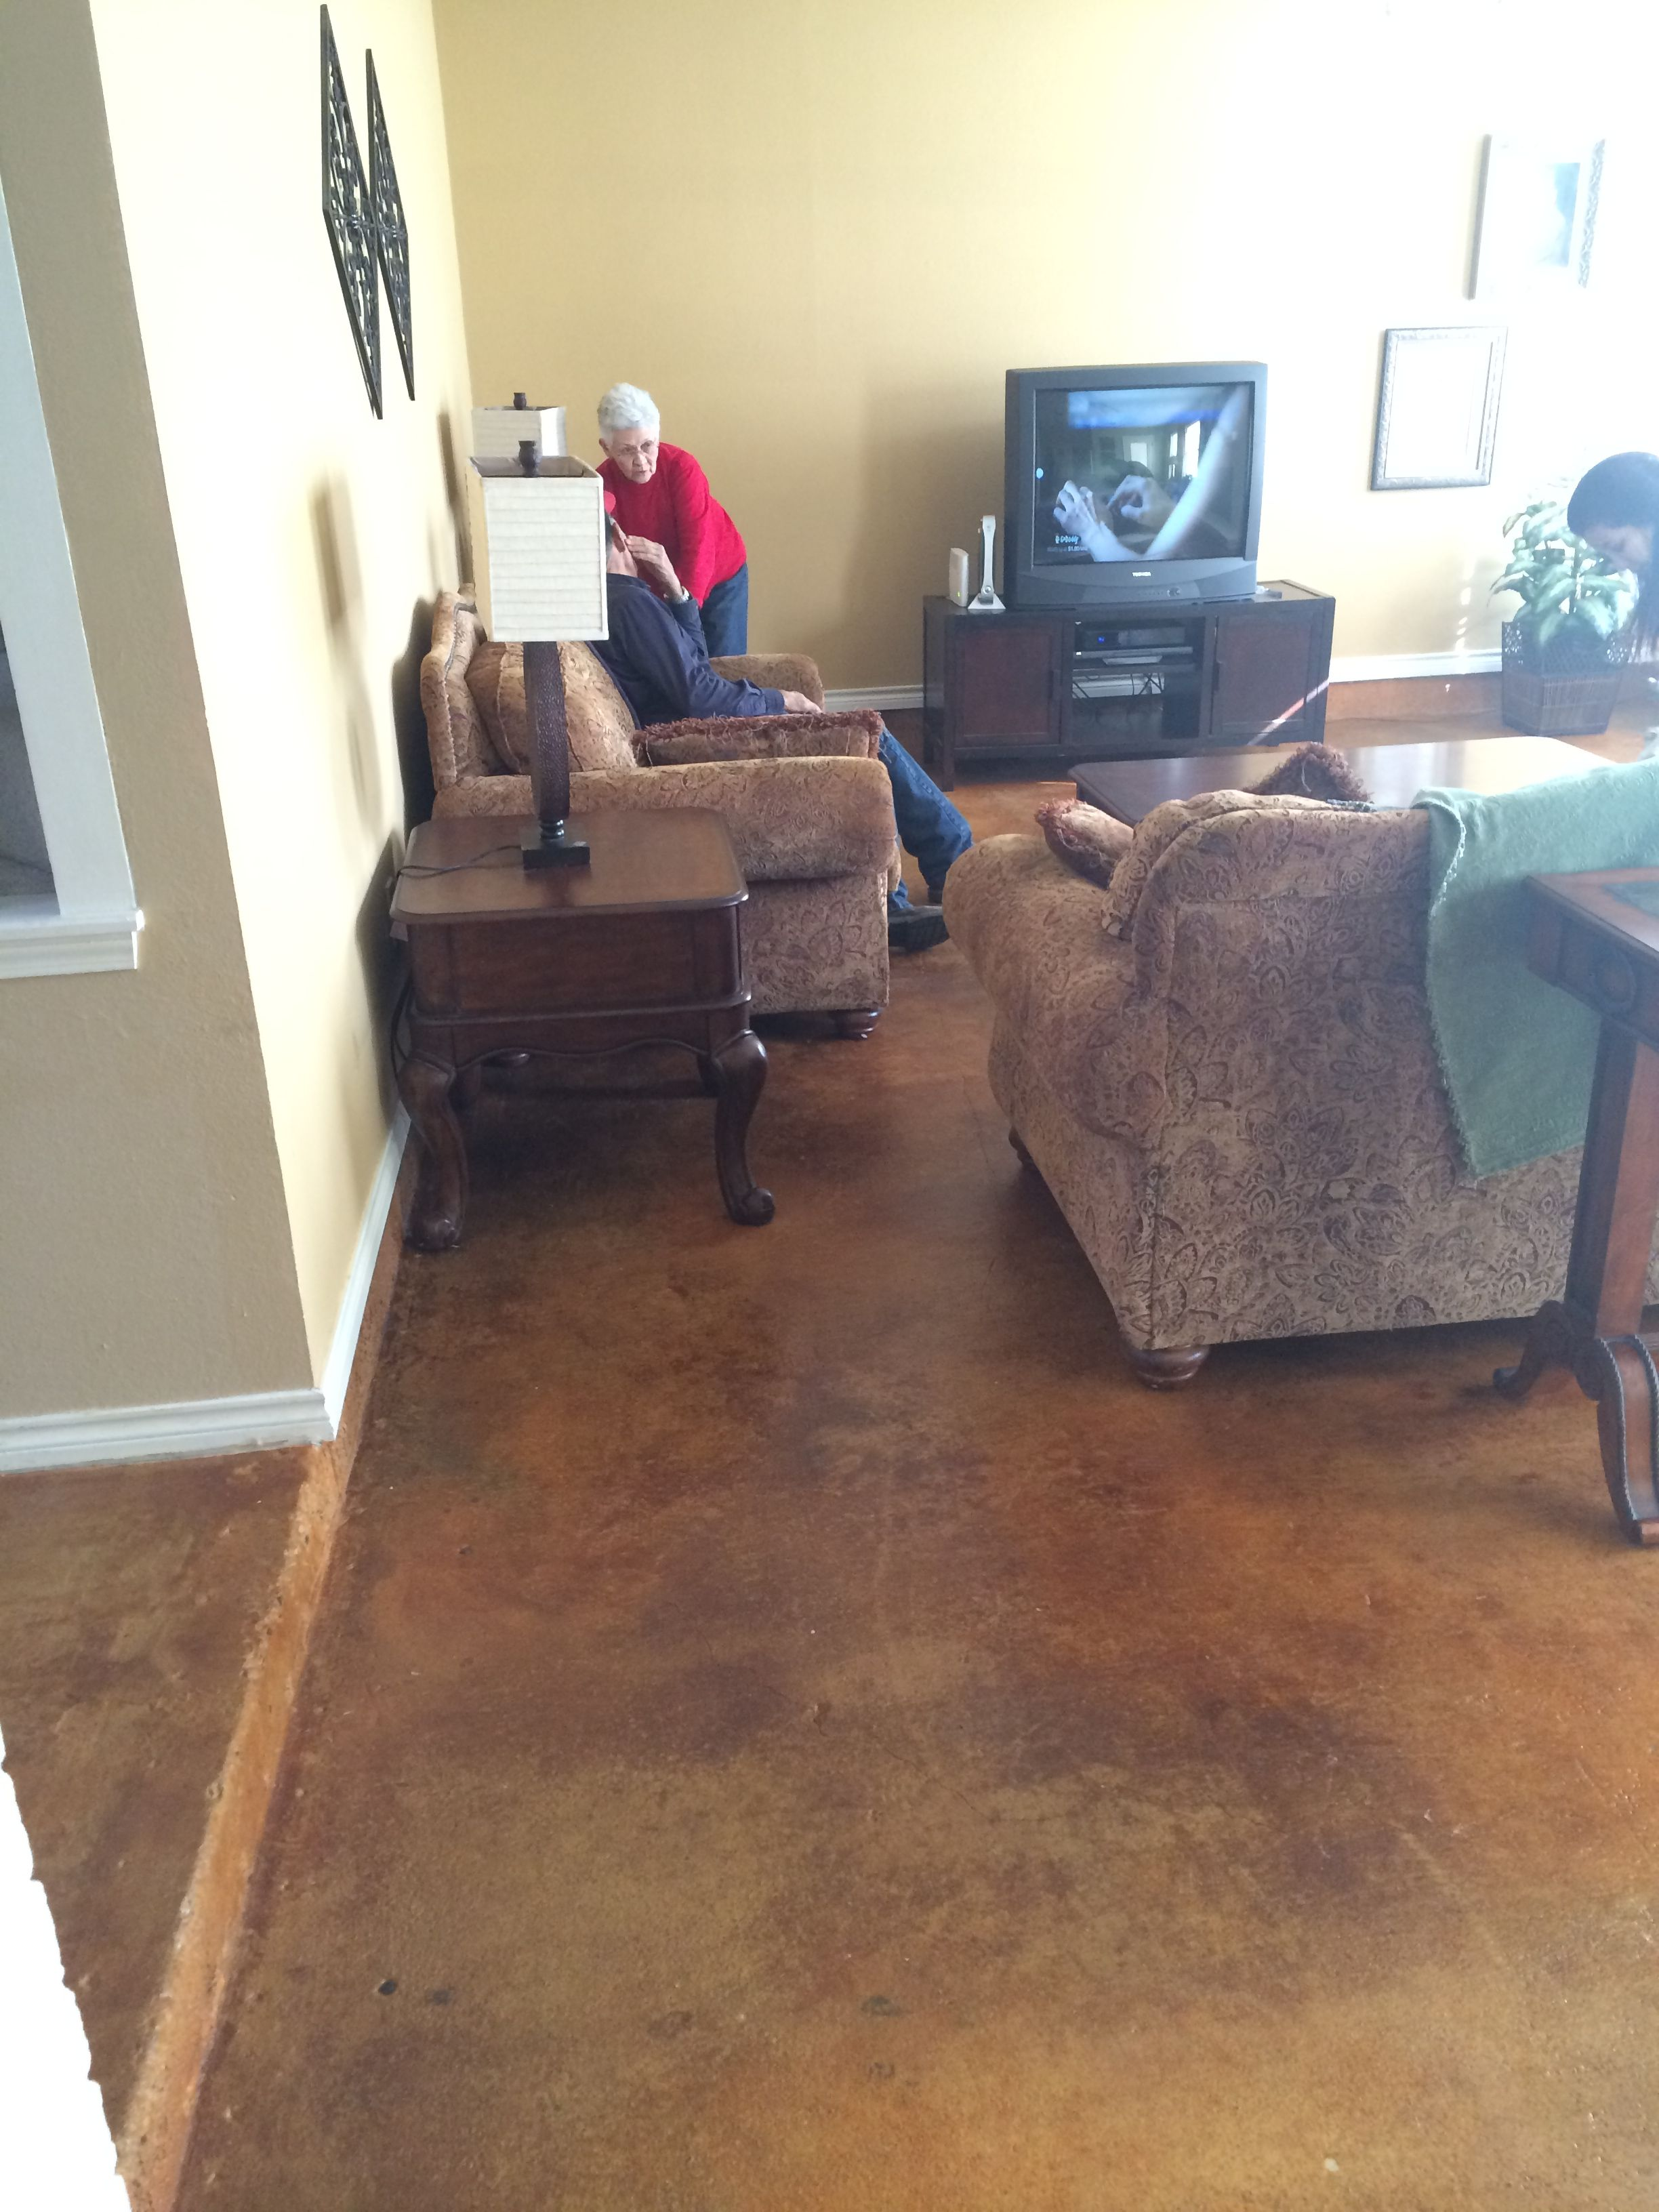 Acetone Concrete Stain Stained Concrete Concrete Stain #stained #concrete #living #room